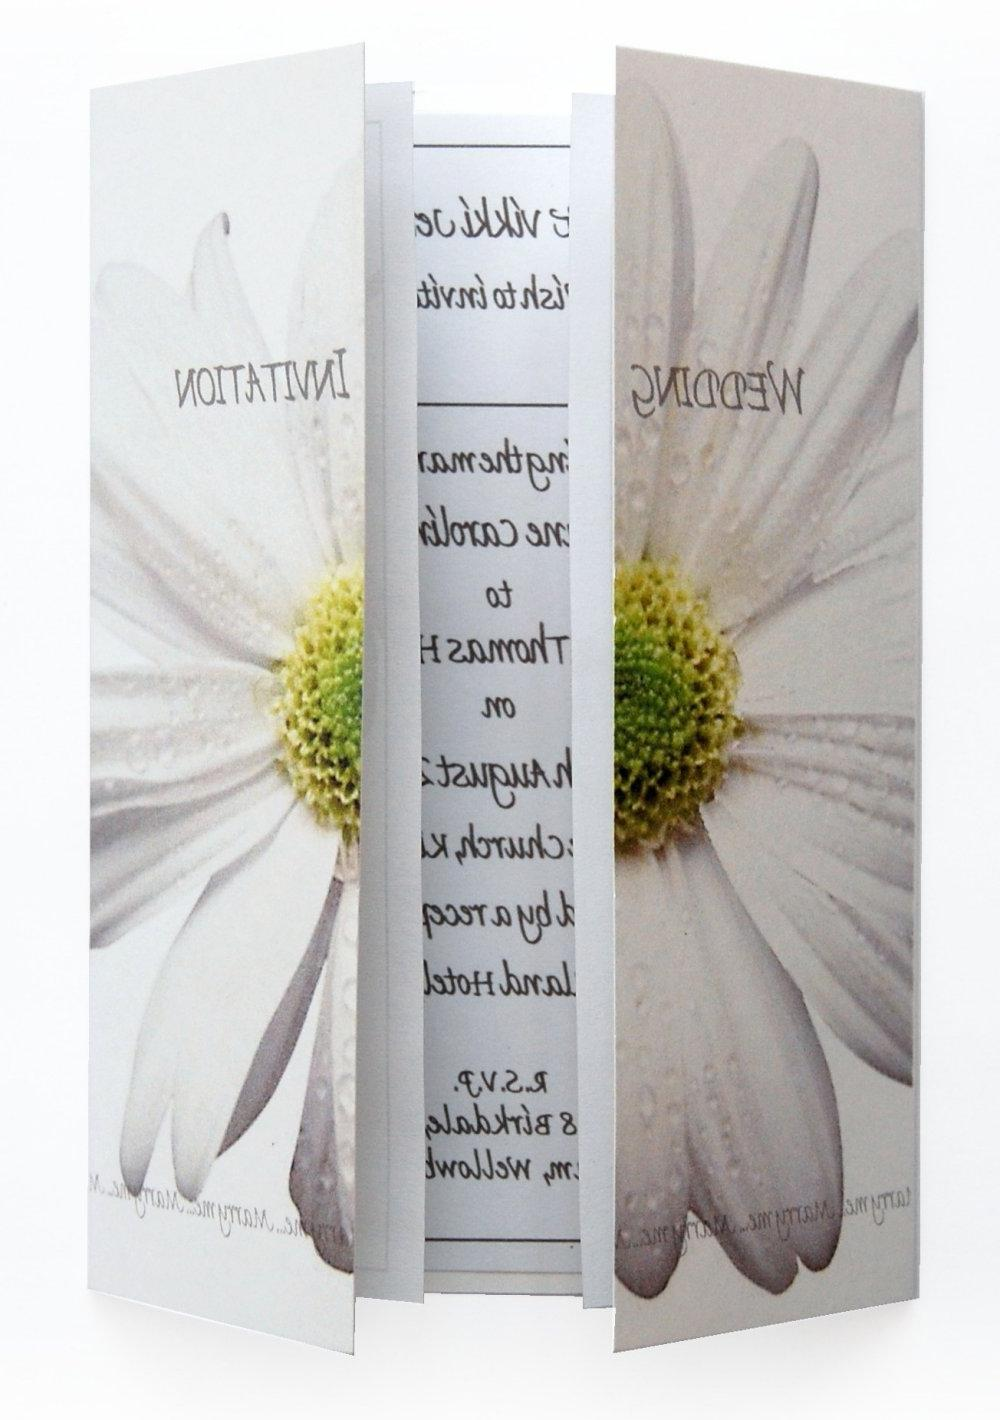 Daisy- White Gatefold Day Invitations